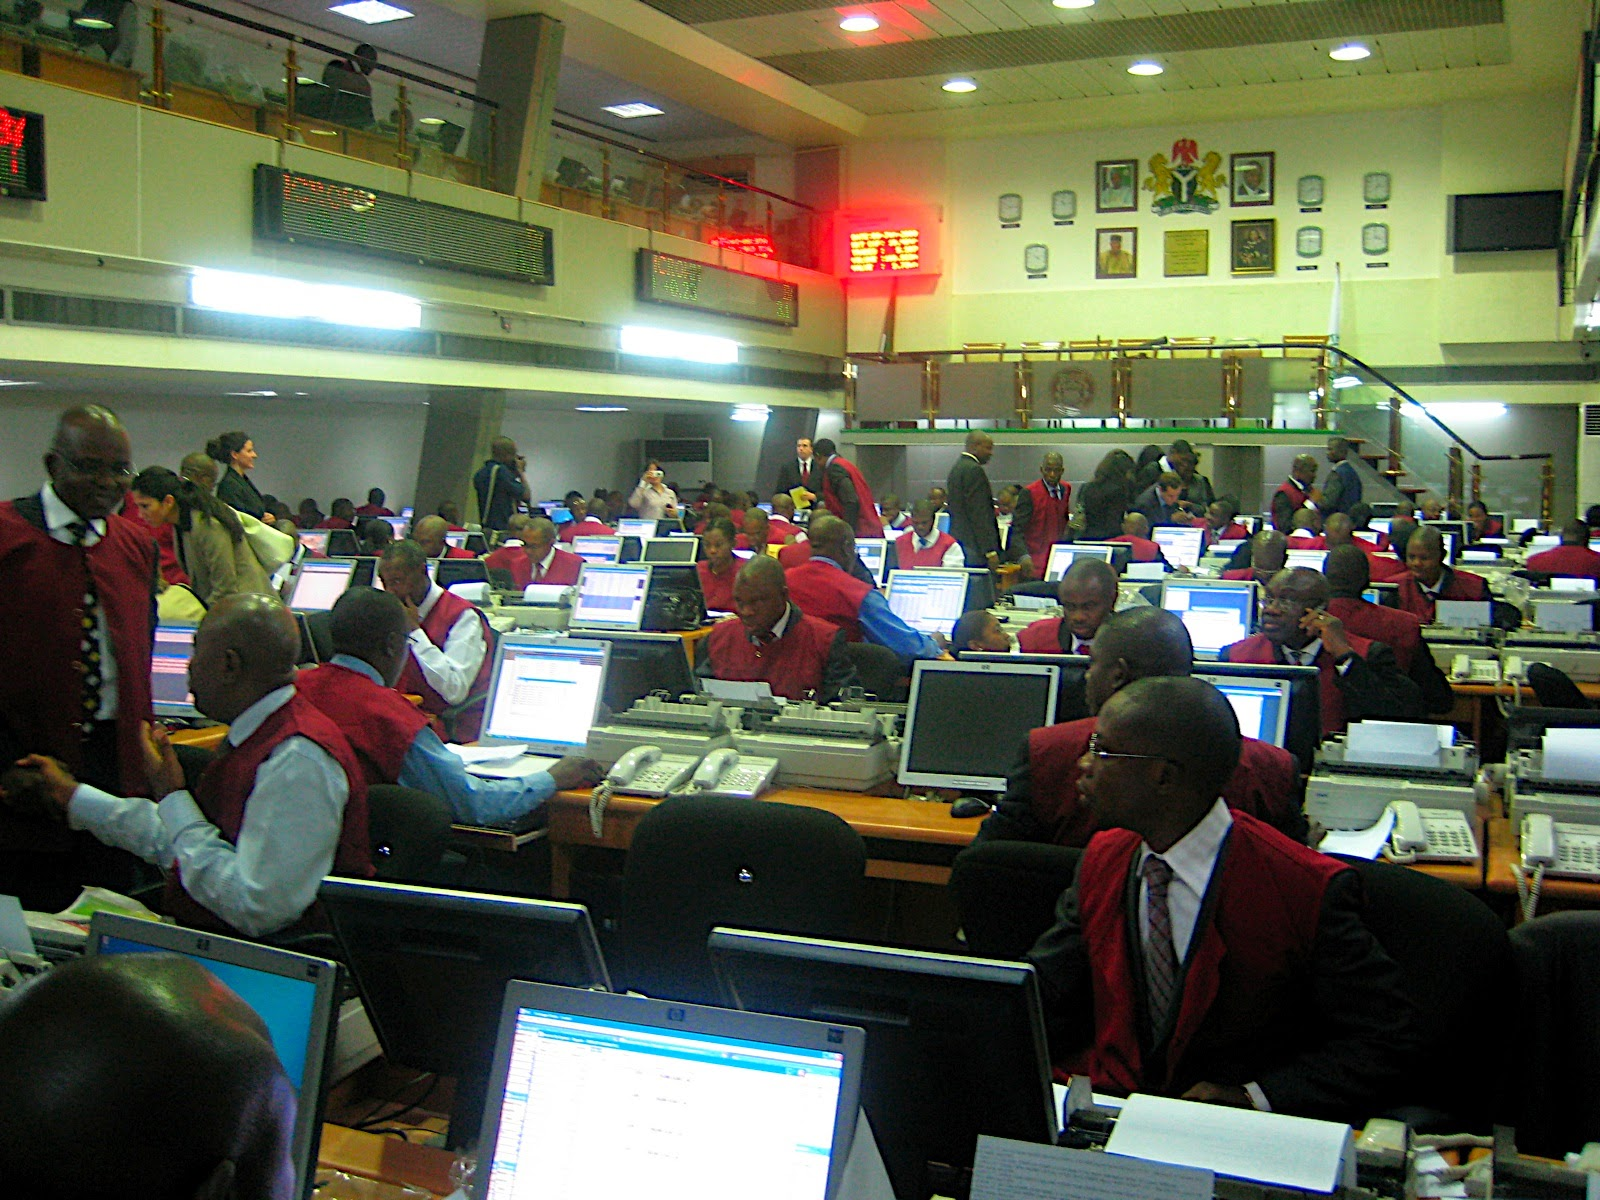 Nigeria Stock Exchange Flies in Spite of Boko Haram With Help From MSCI